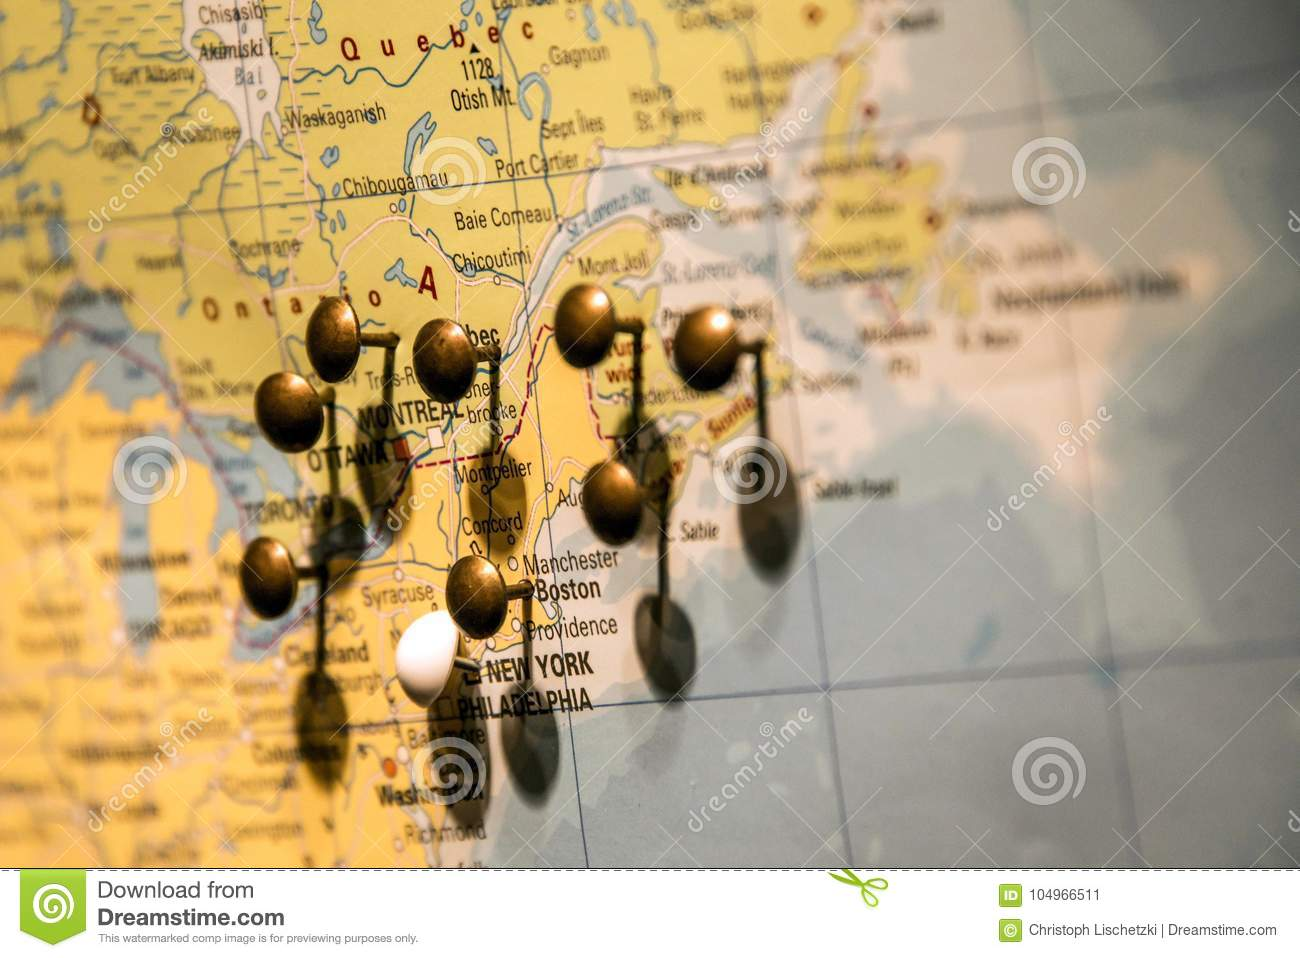 Picture Of World Map Travel Concept With Many Pushpins Pins ... on cache creek map directions, amazon rainforest map directions, edmonton map directions, africa map directions, car map directions, california map directions, maine map directions,